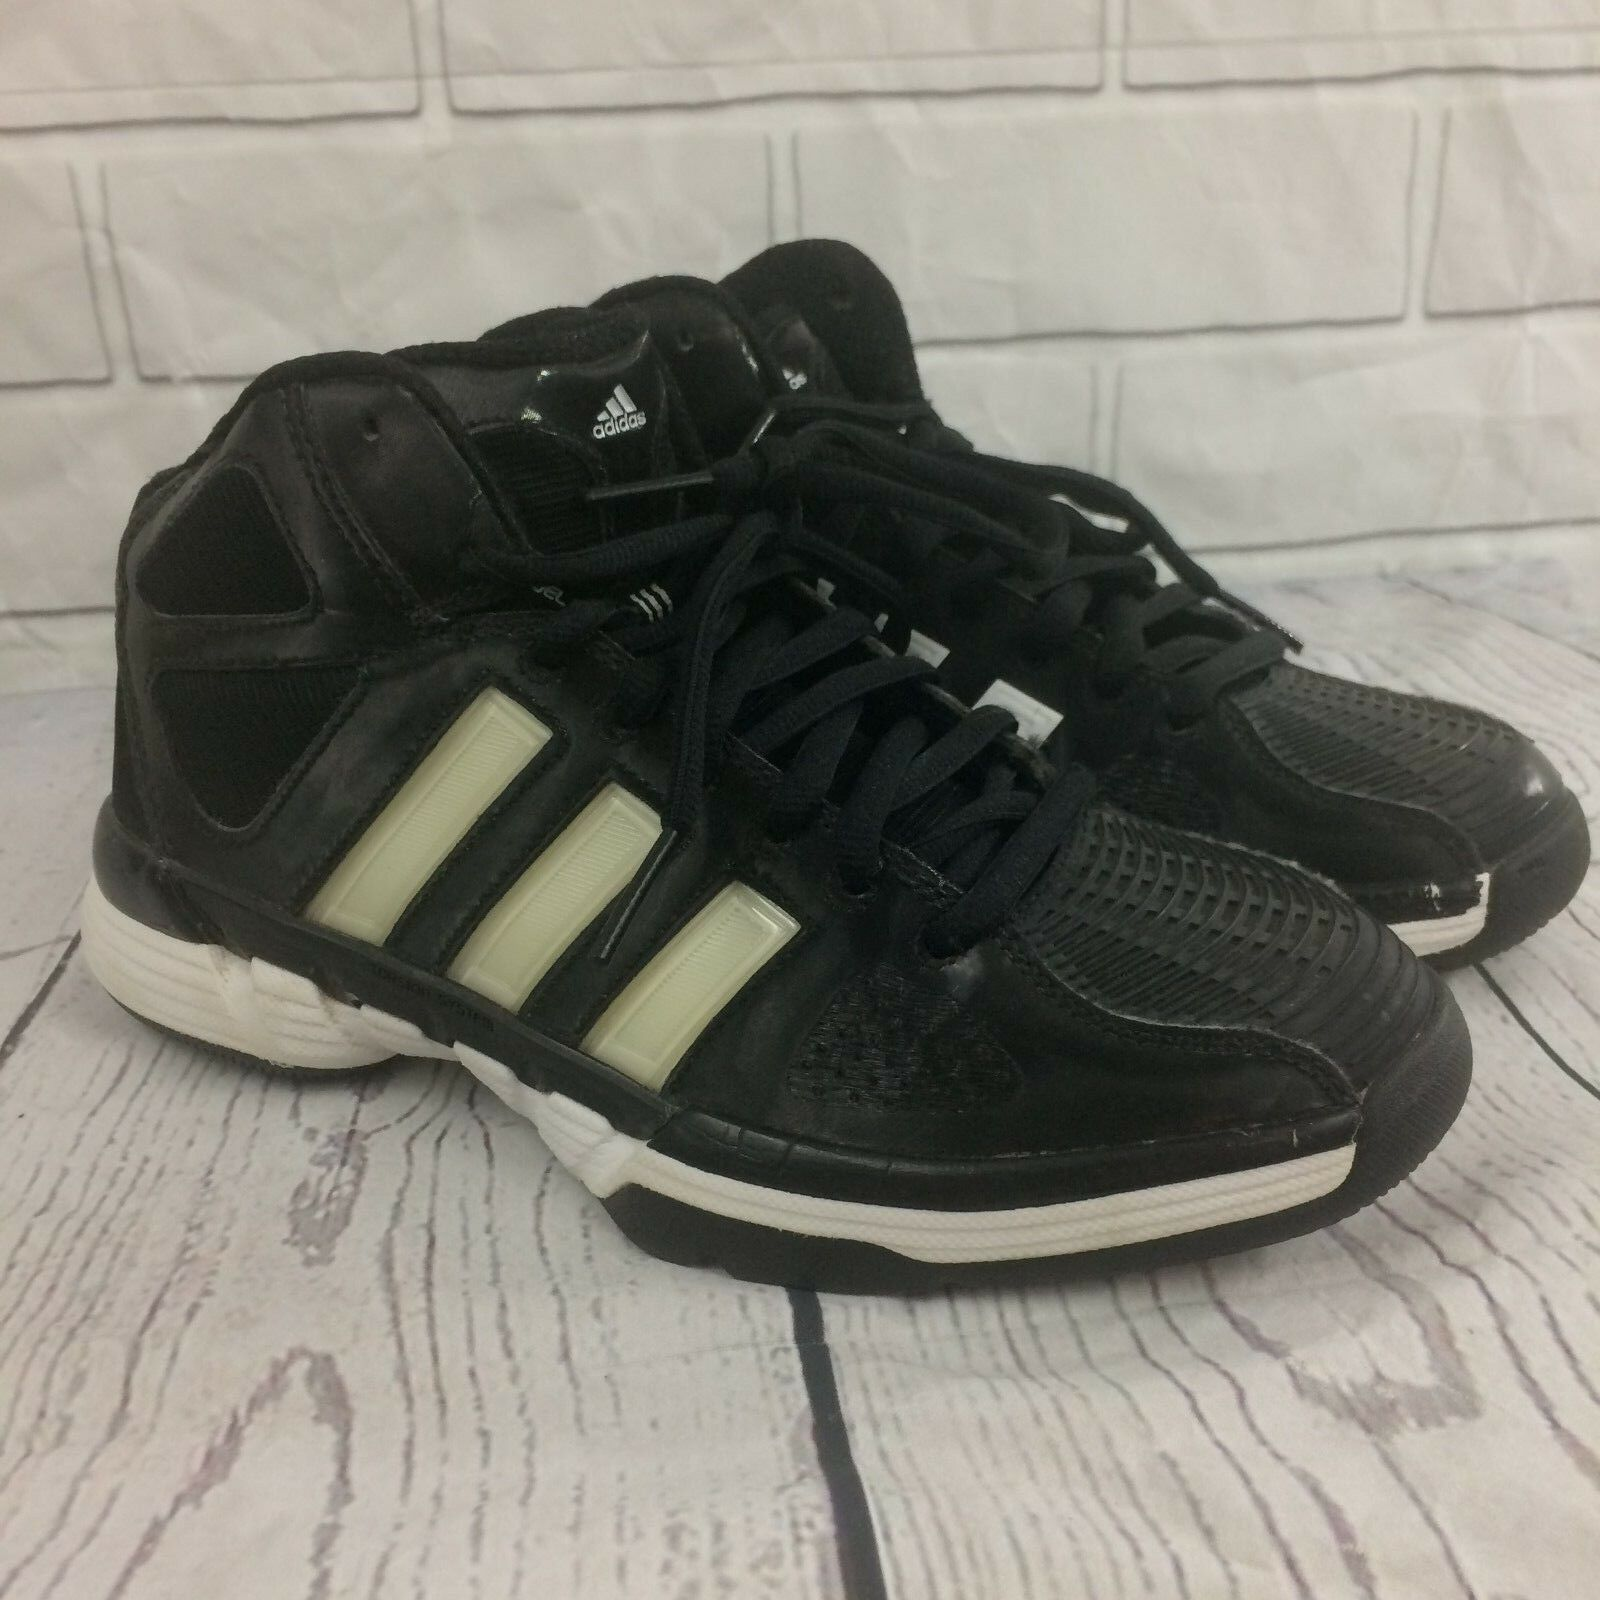 Adidas High Top Basketball Shoes Mens Black And White US Comfortable Cheap women's shoes women's shoes